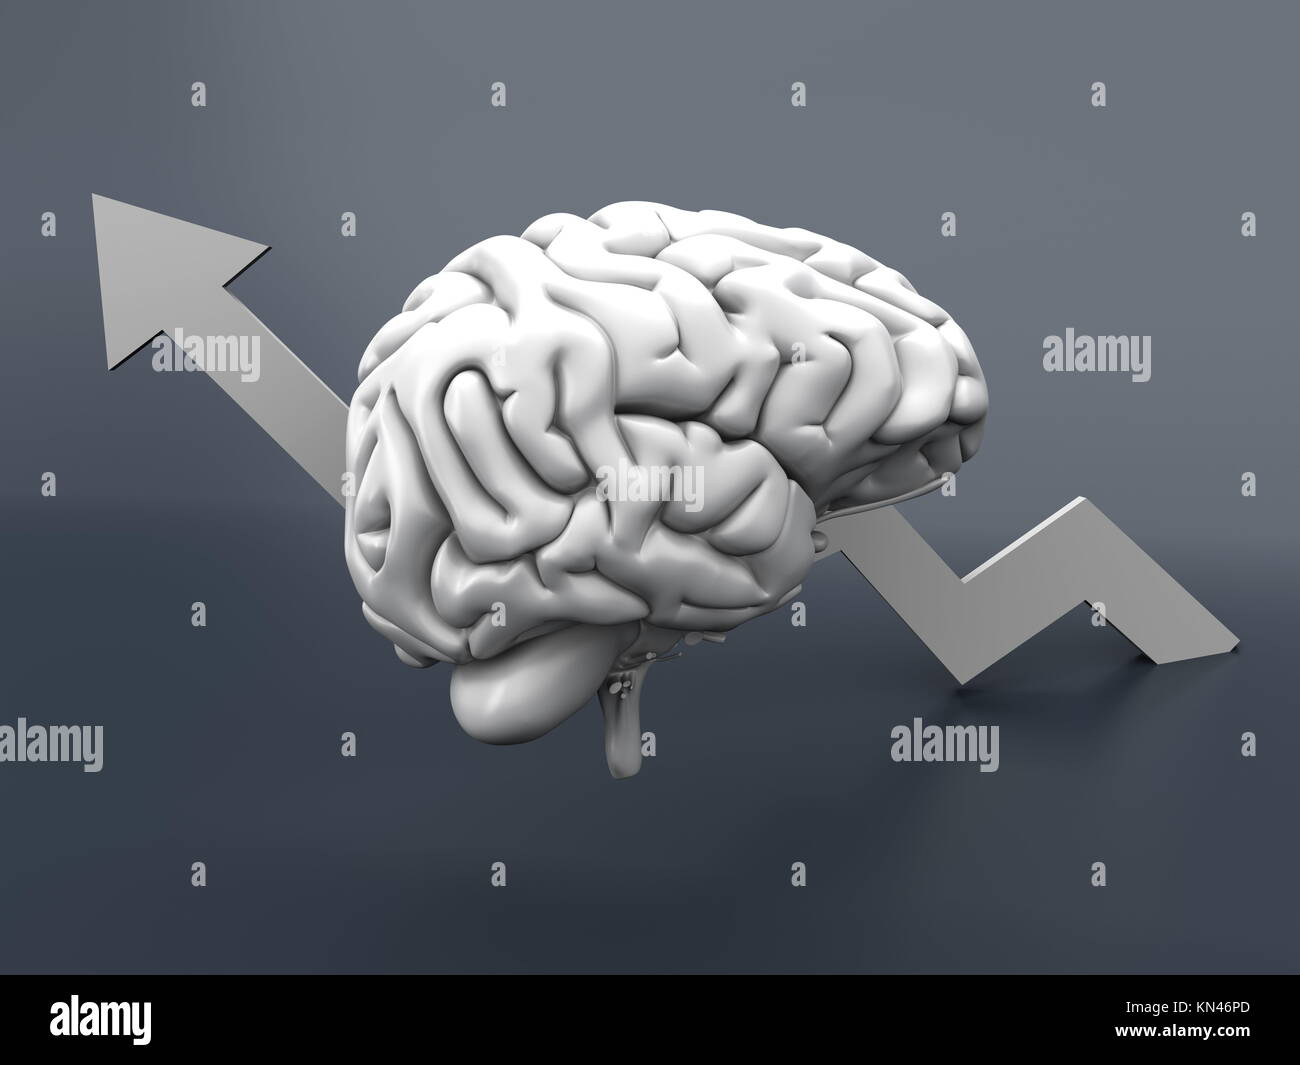 Growing intelligence. 3D Illustration. - Stock Image